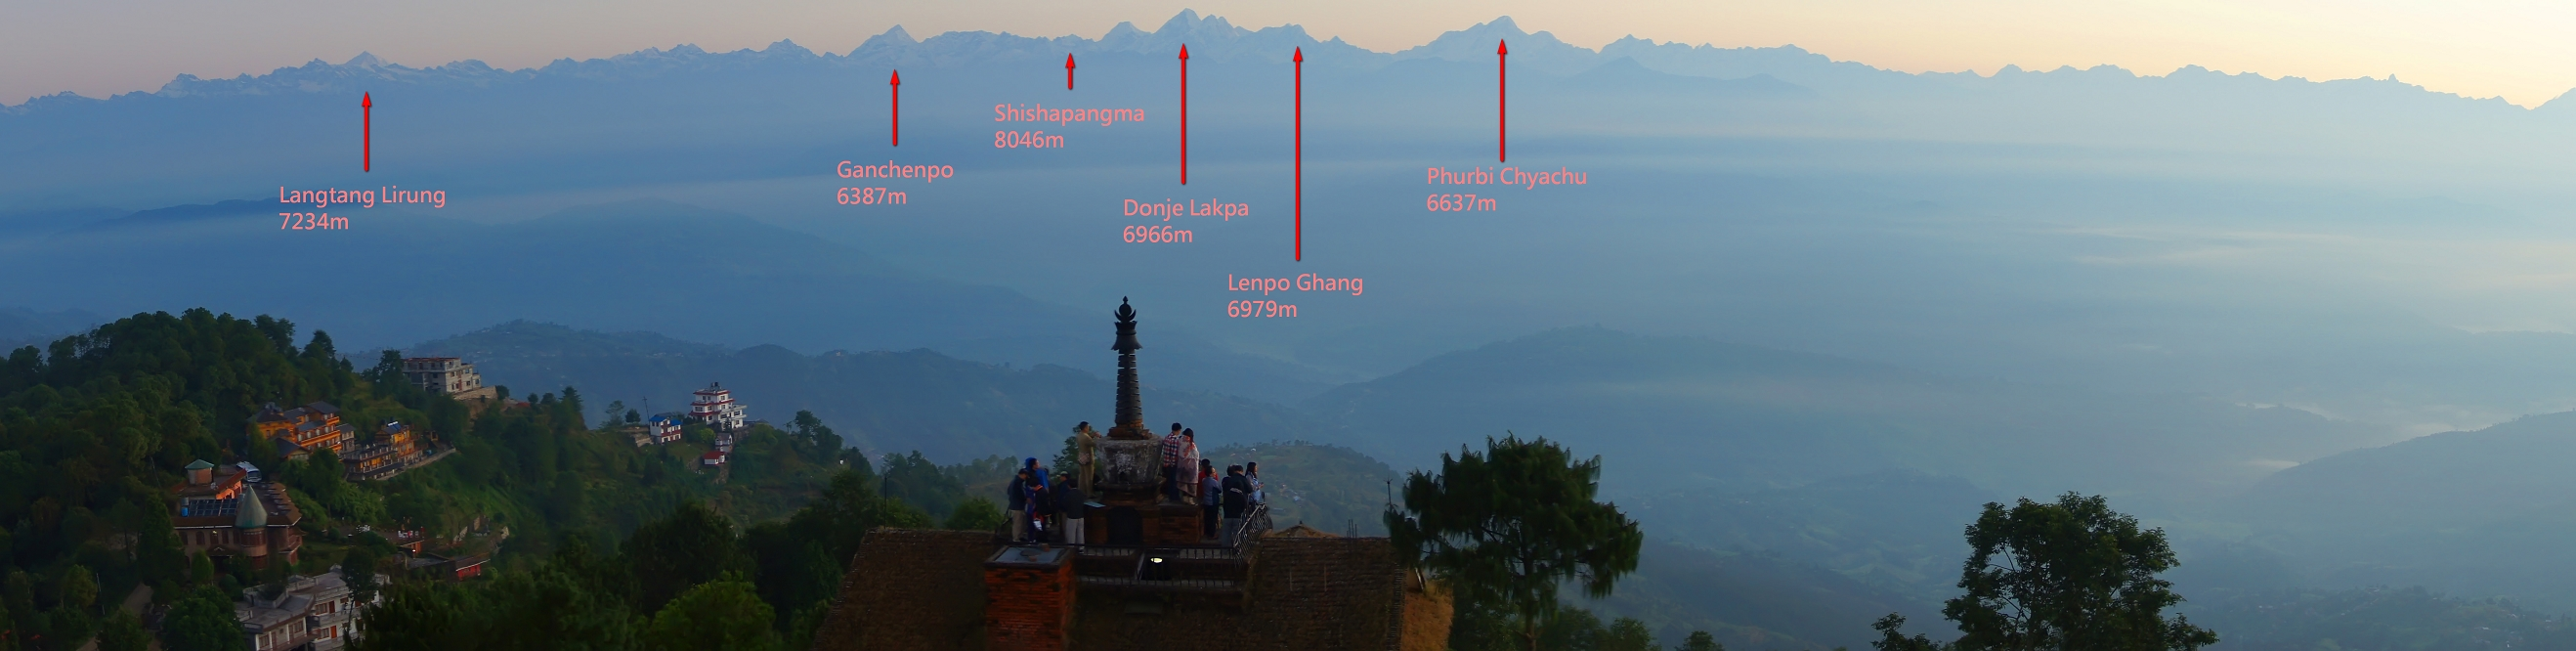 Nagarkot mountain view